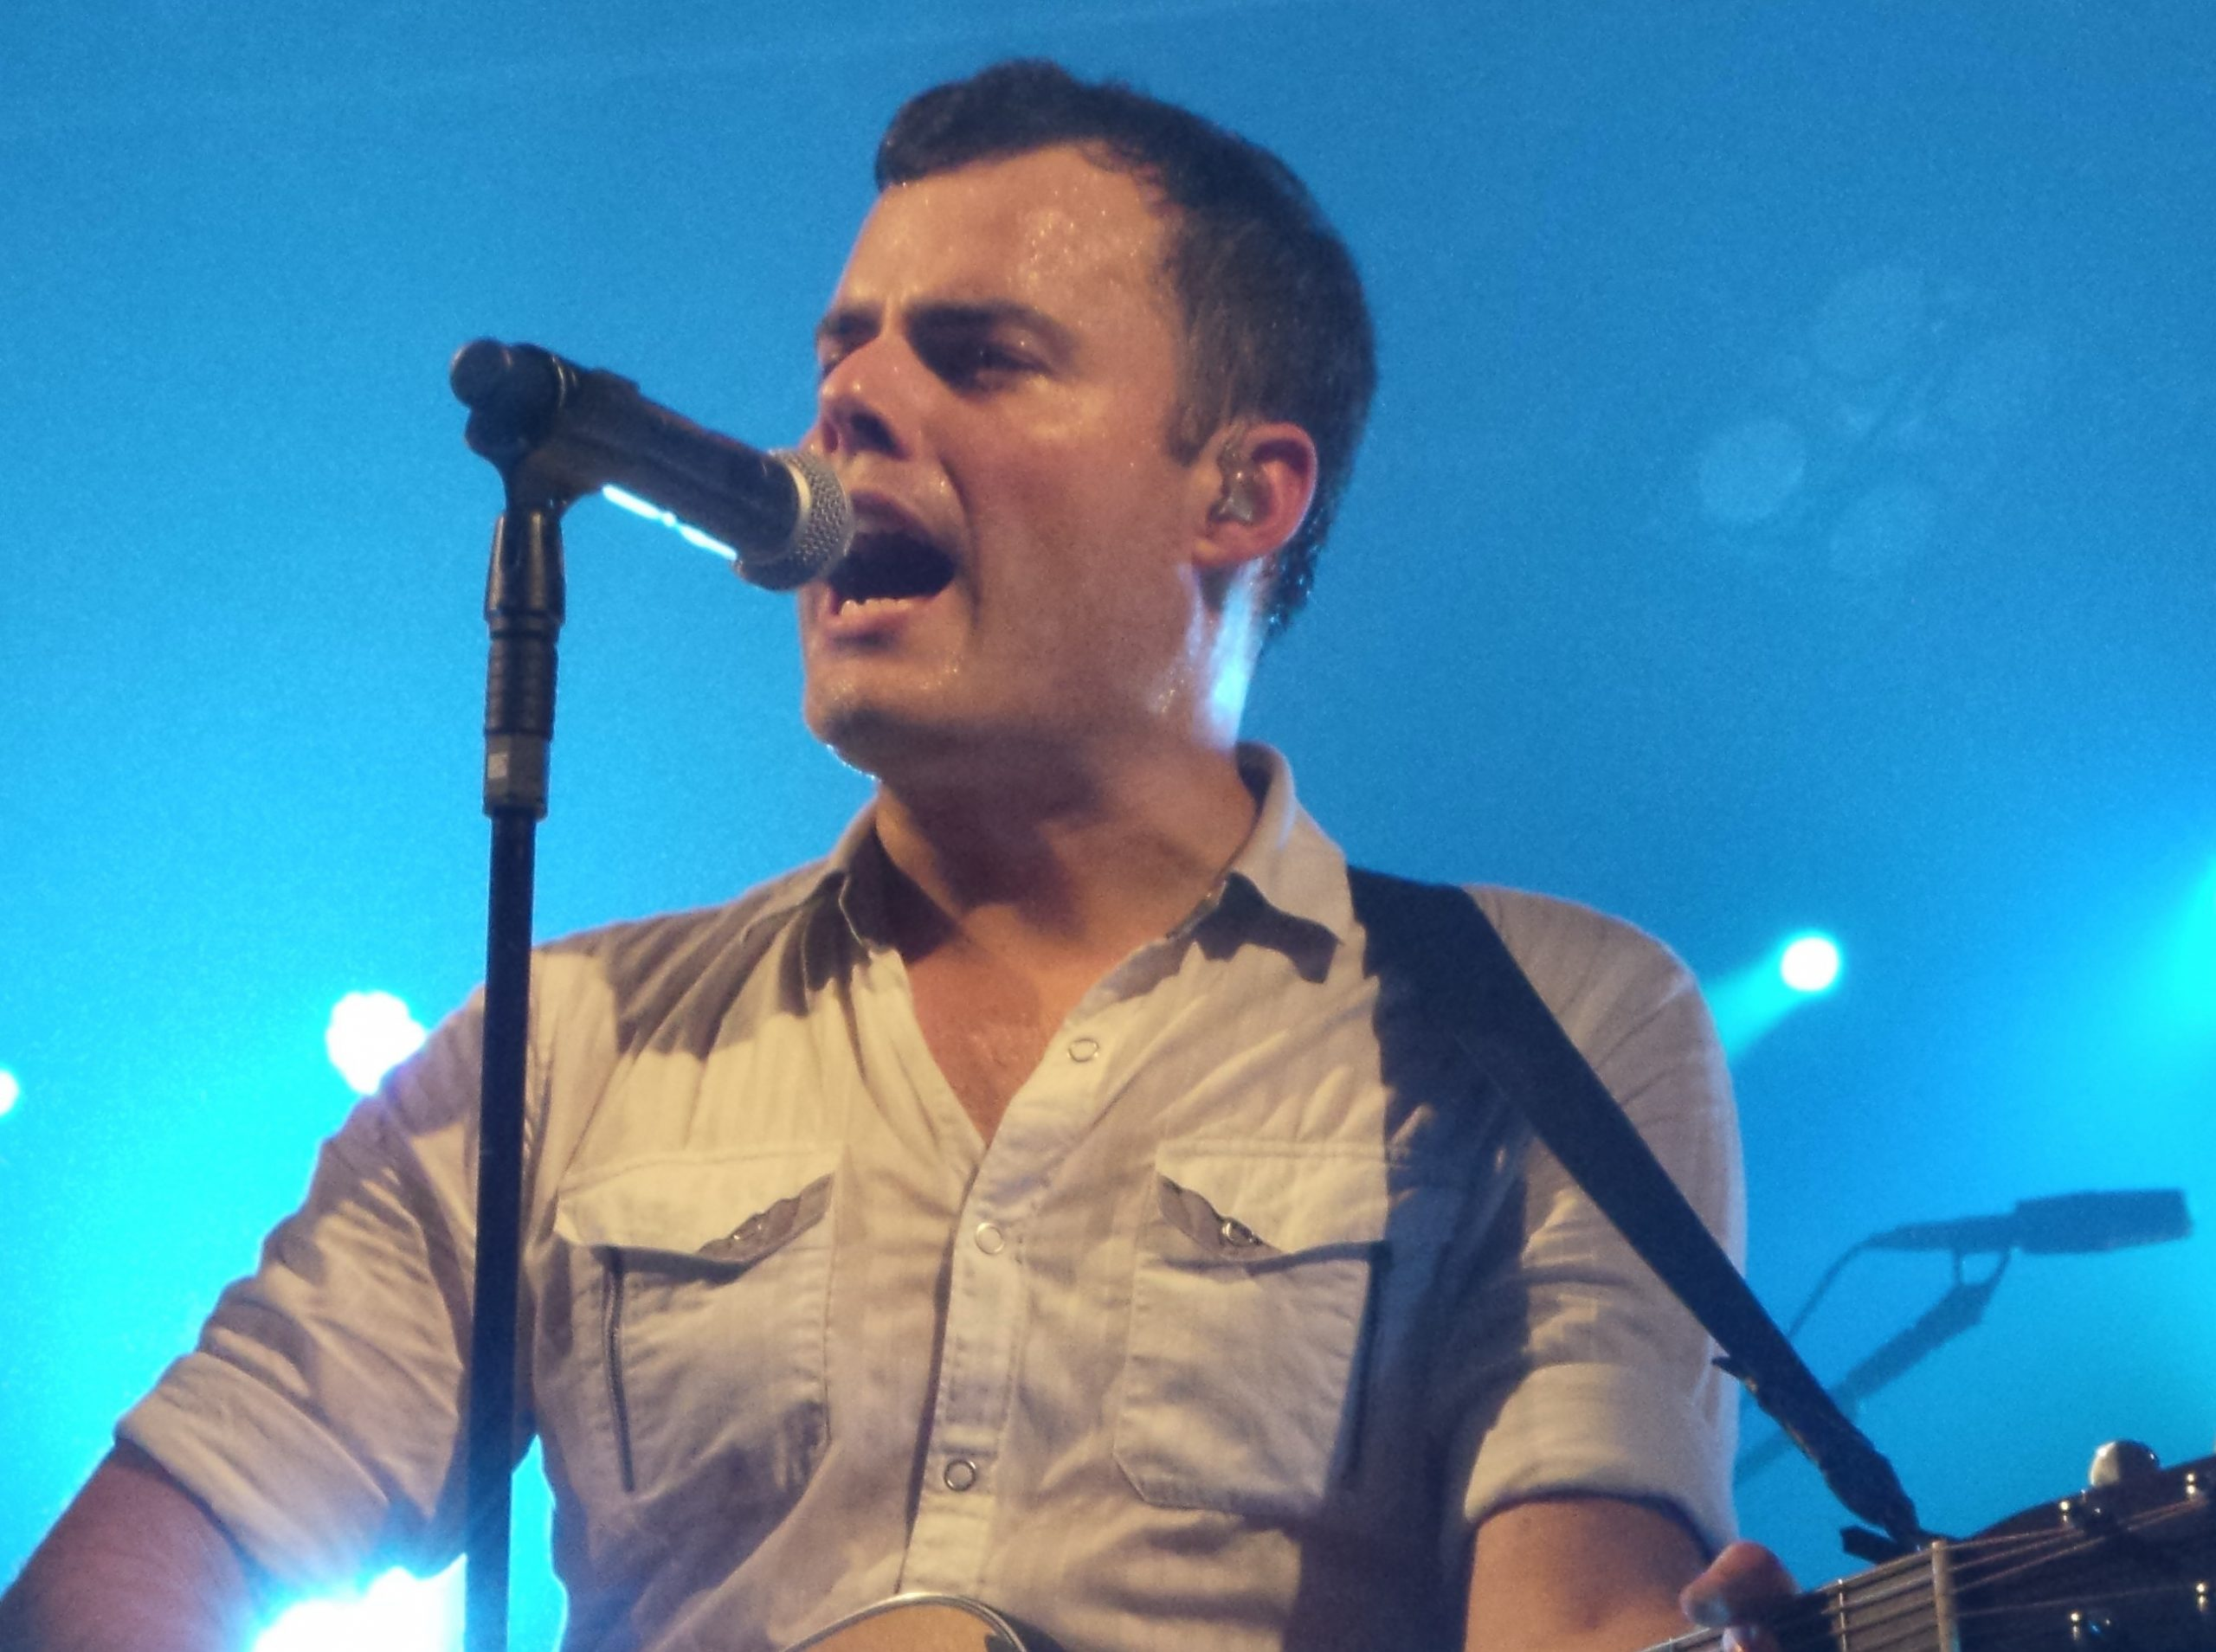 Marc Martel scaled 25 Things You Need To Know About Bohemian Rhapsody